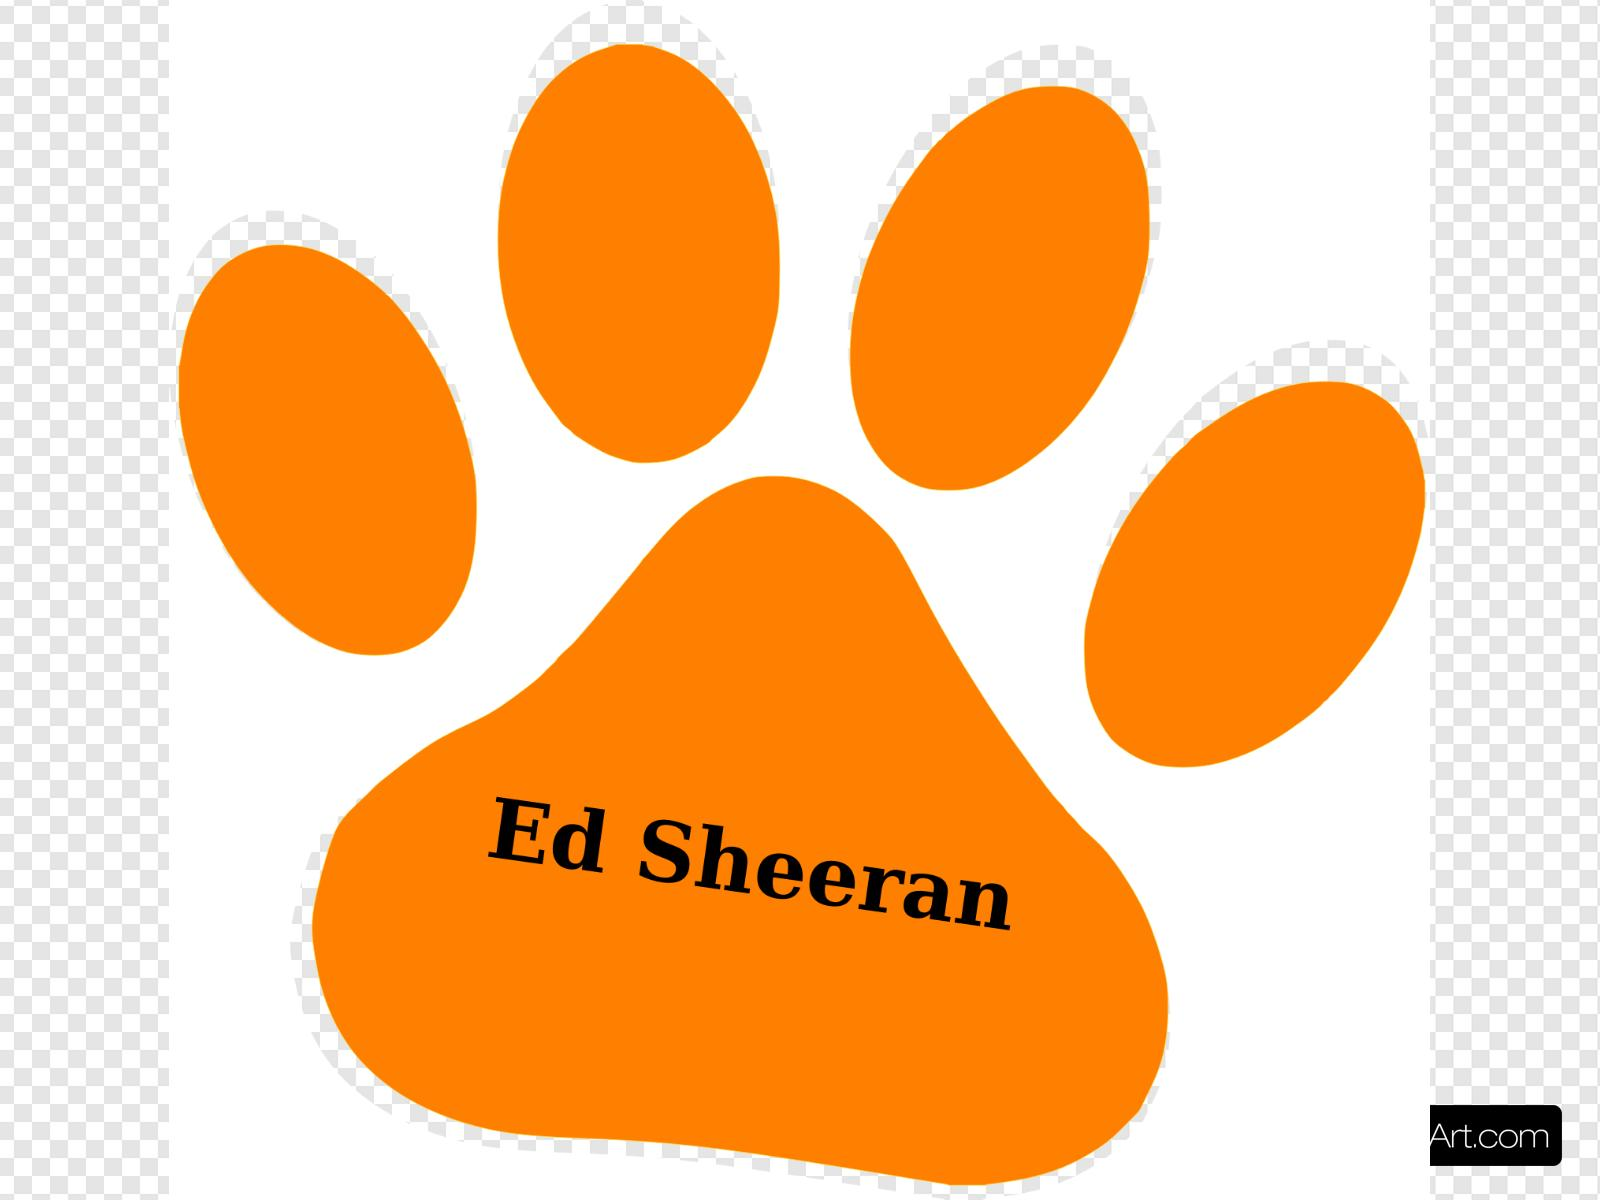 Orange Paw Ed Sheeran Text Clip art, Icon and SVG.